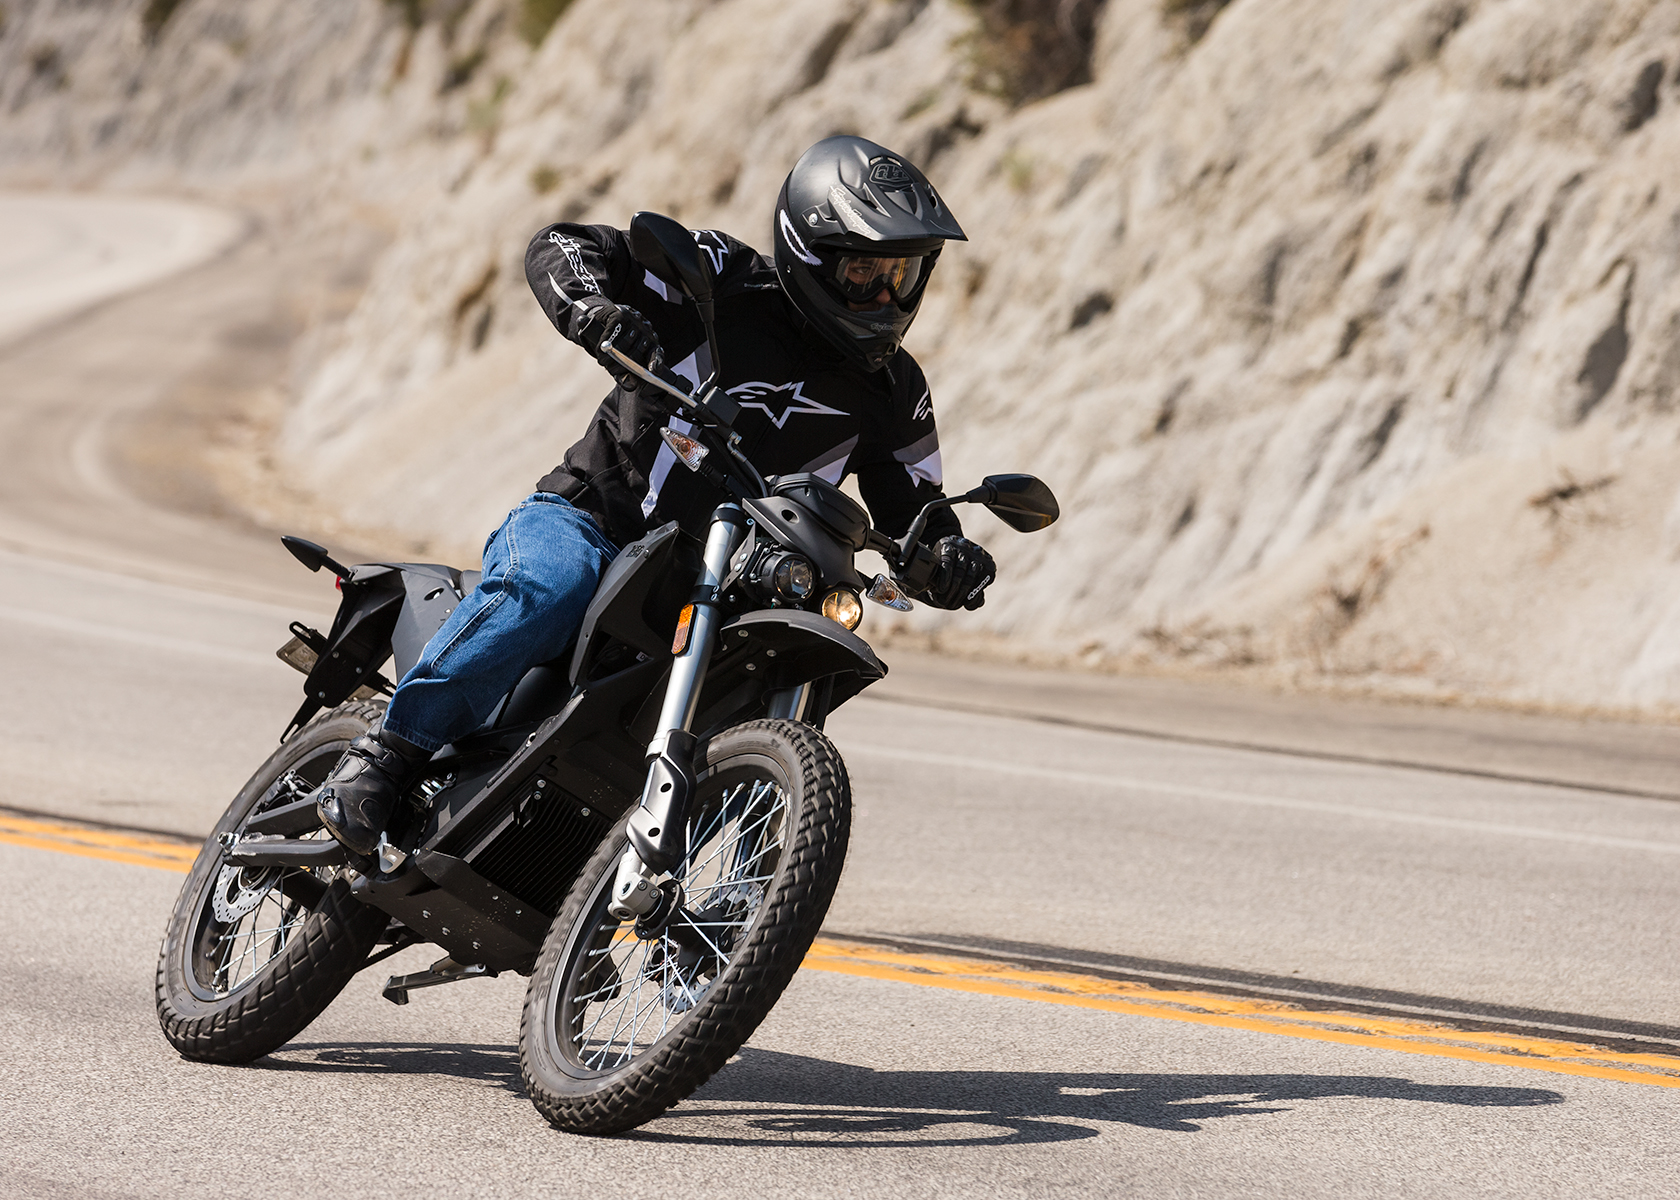 2015 Zero FX Electric Motorcycle: